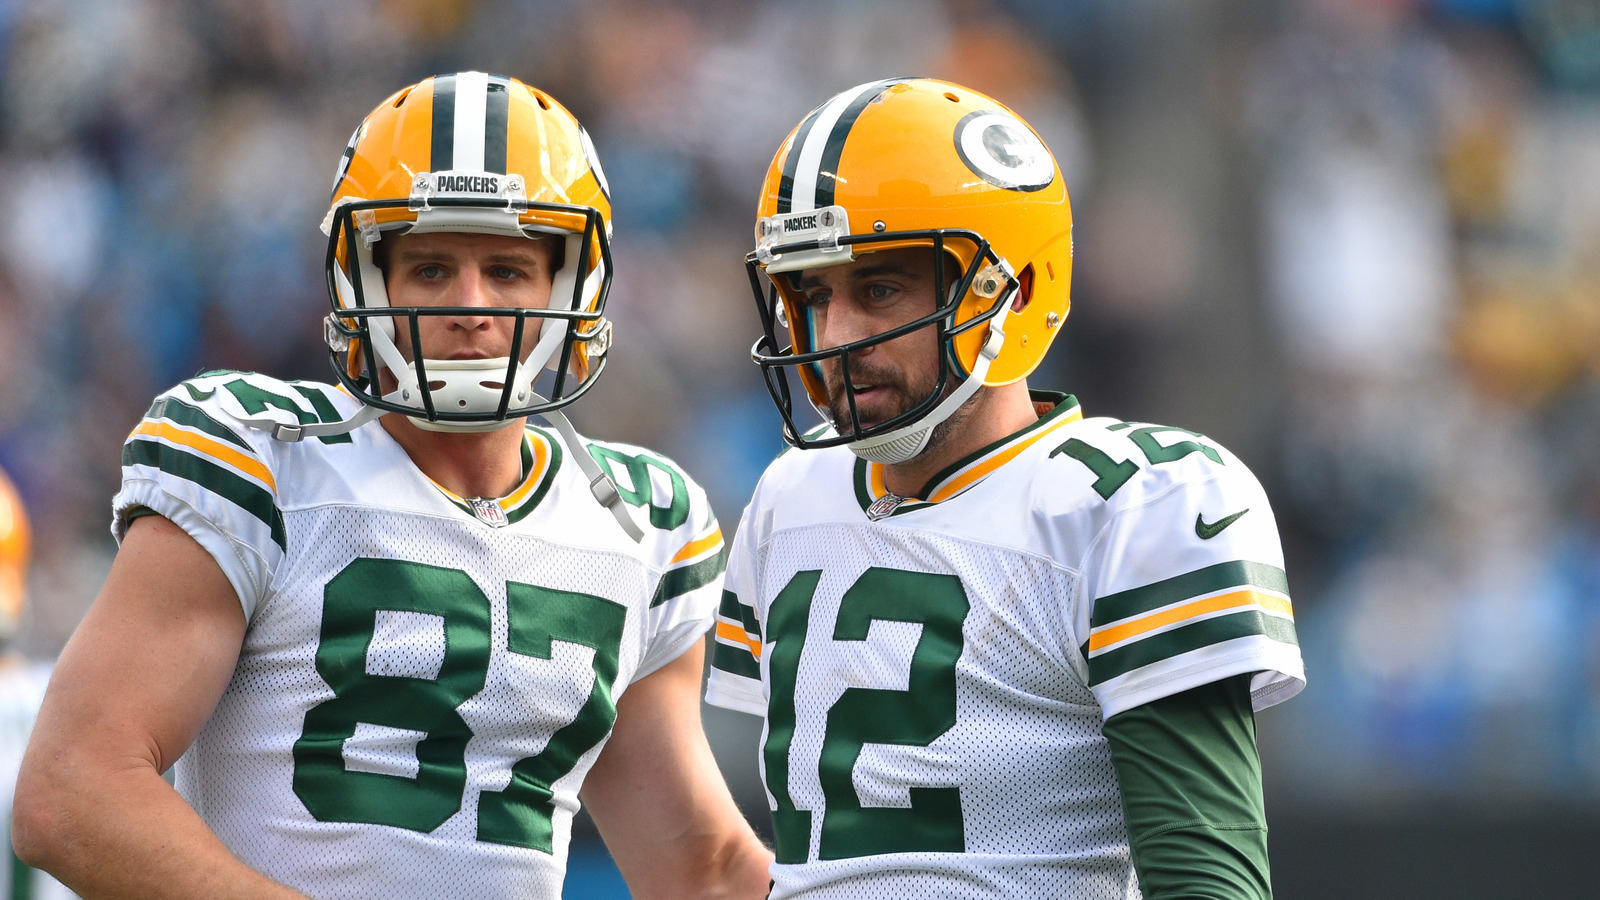 Aaron Rodgers appears to send a message to Packers about Jordy